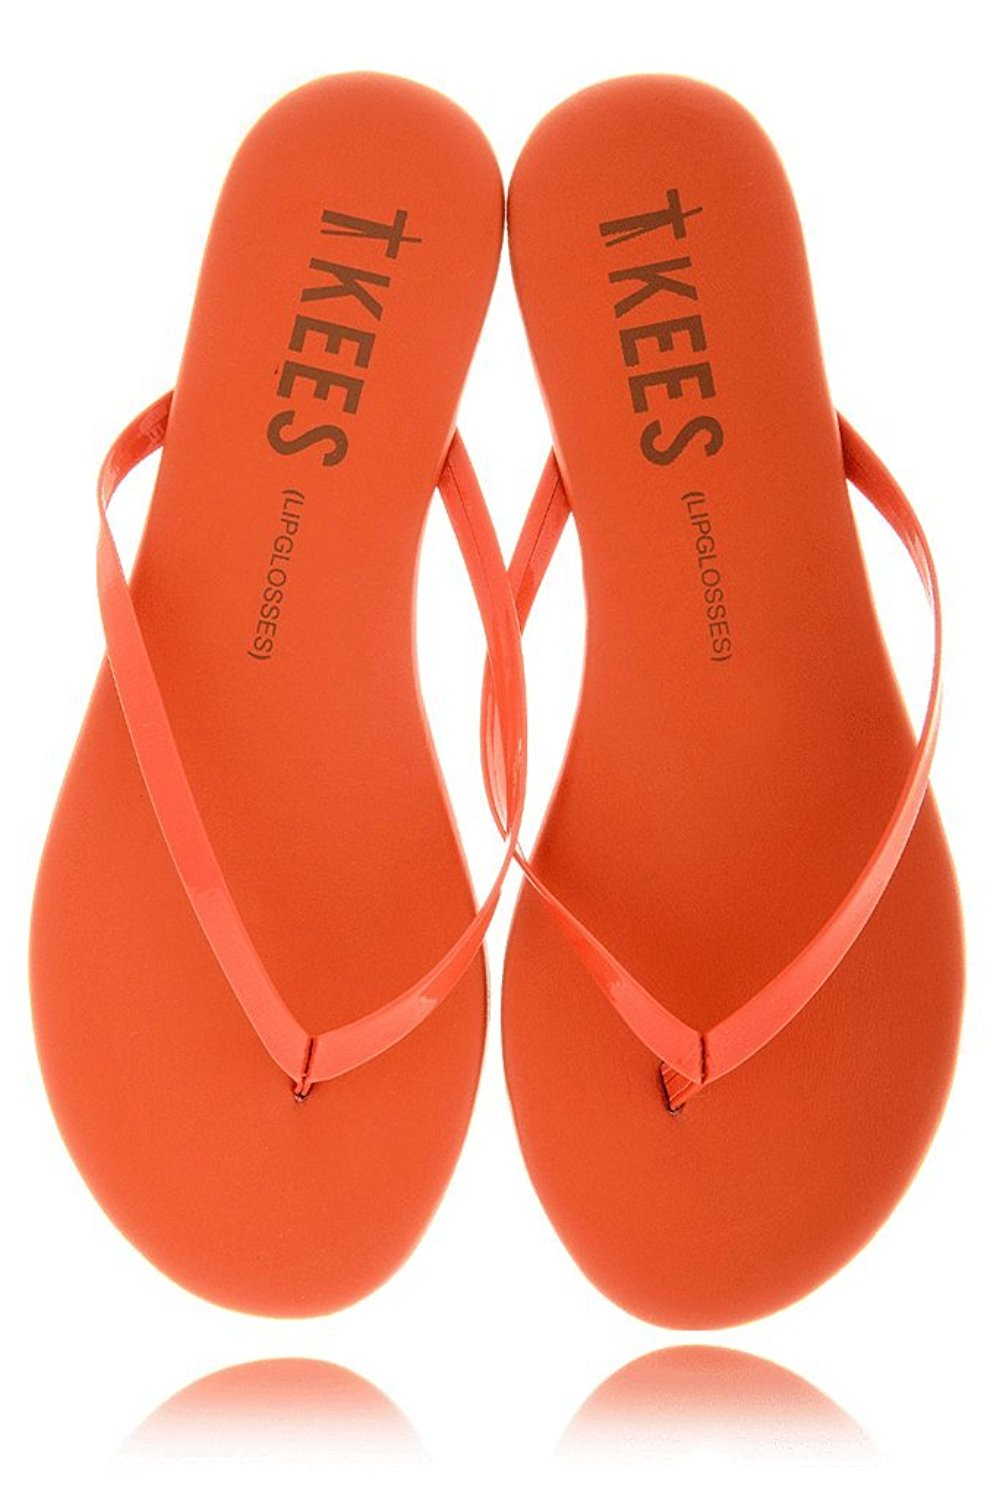 0d56a9e39a296 Get Quotations · LIPGLOSSES Poppy Orange Leather Thong Sandals